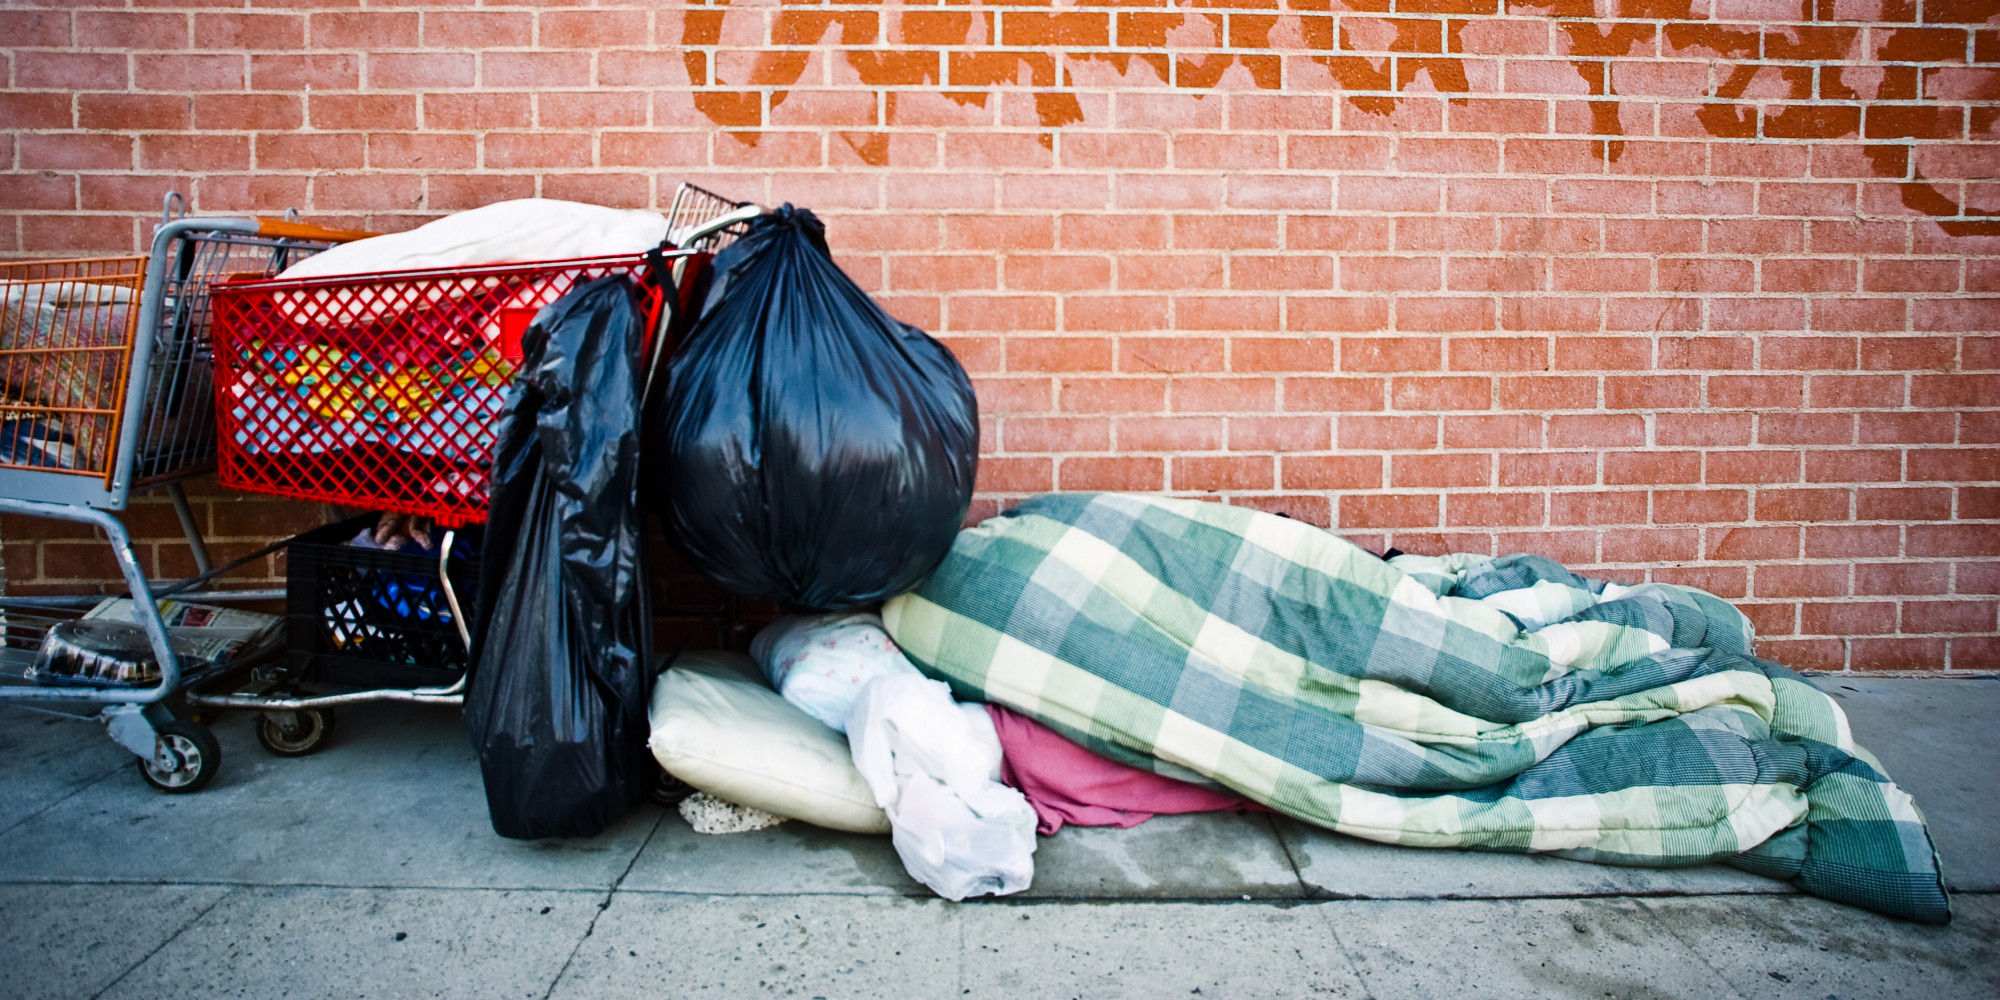 myths about homeless There are many myths and stereotypes about the homeless myths and stereotypes come about due to misconceptions born of ignorance, overgeneralizations from a single experience, and poor access to the real facts since the homeless population is often called the invisible population, it is.